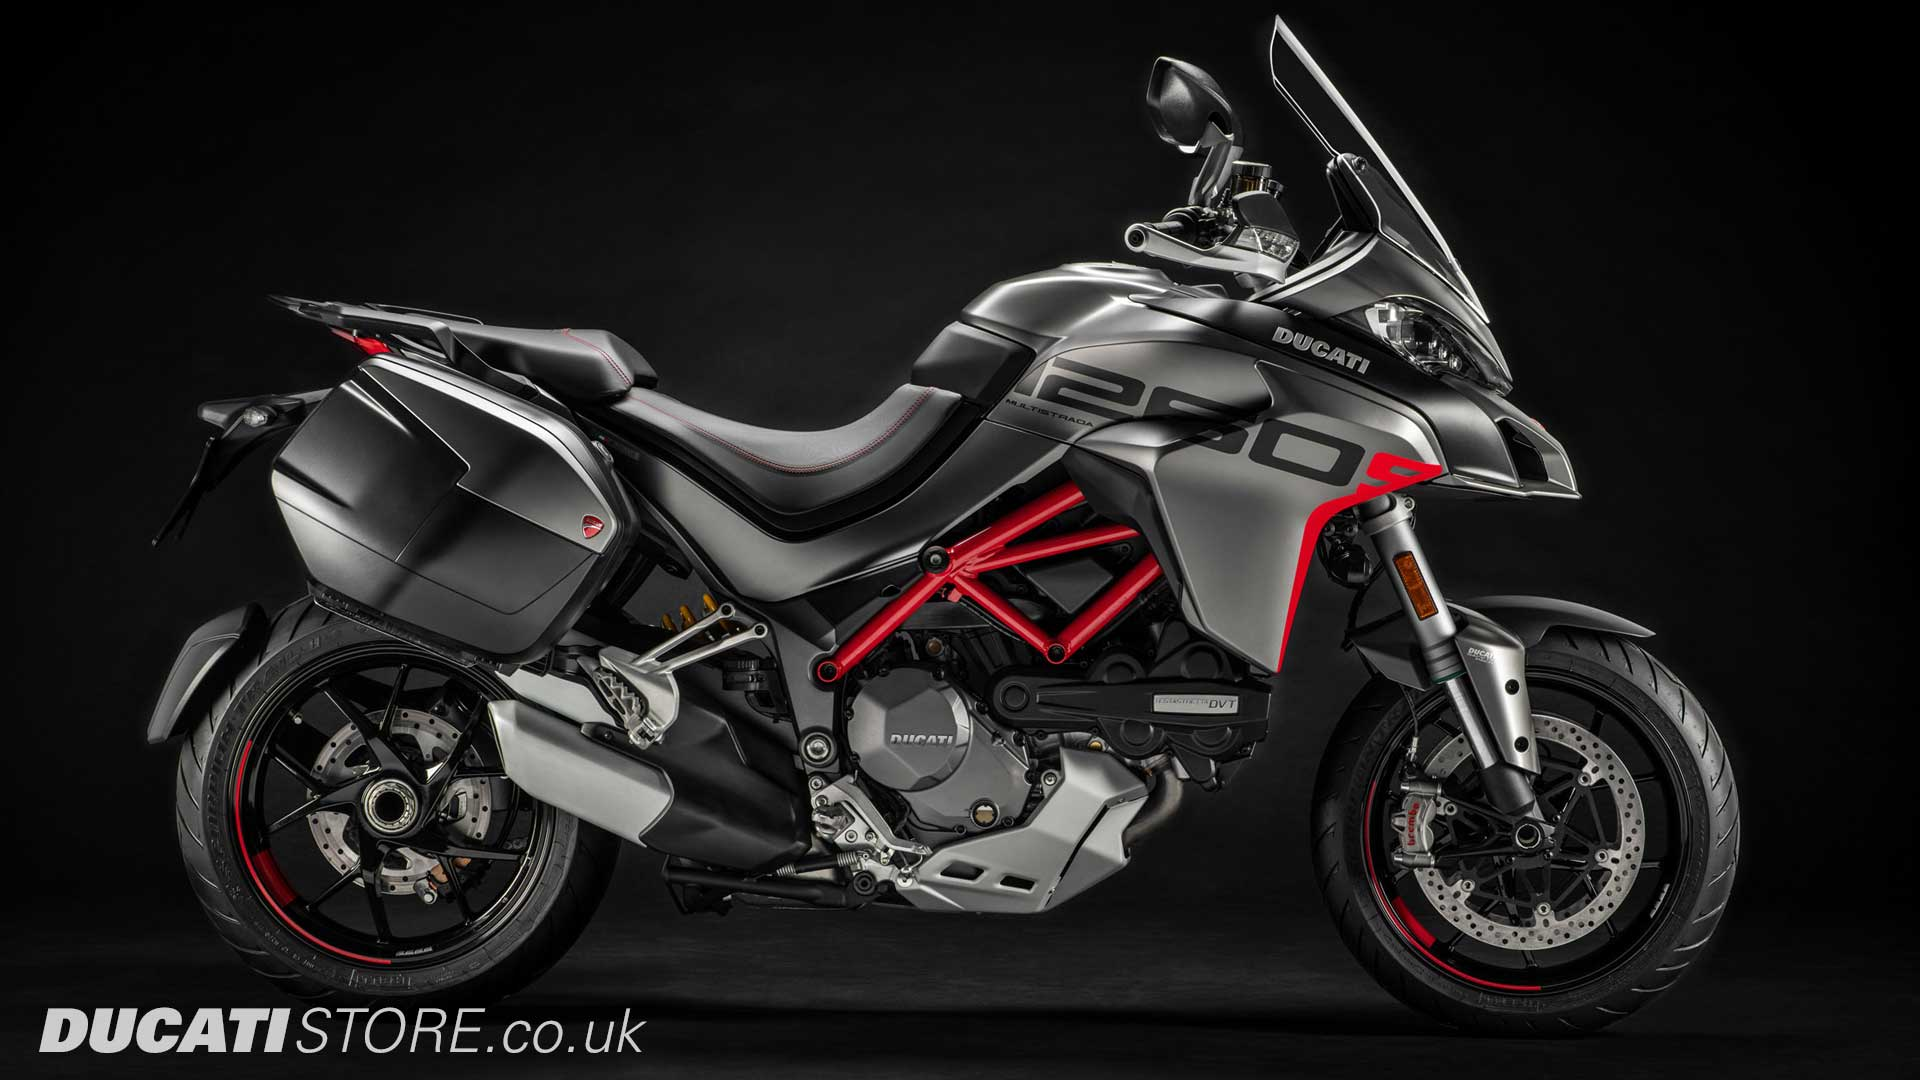 2020 Ducati Multistrada 1260 S Grand Tour for sale at Ducati Stoke, Staffordshire, Scotland